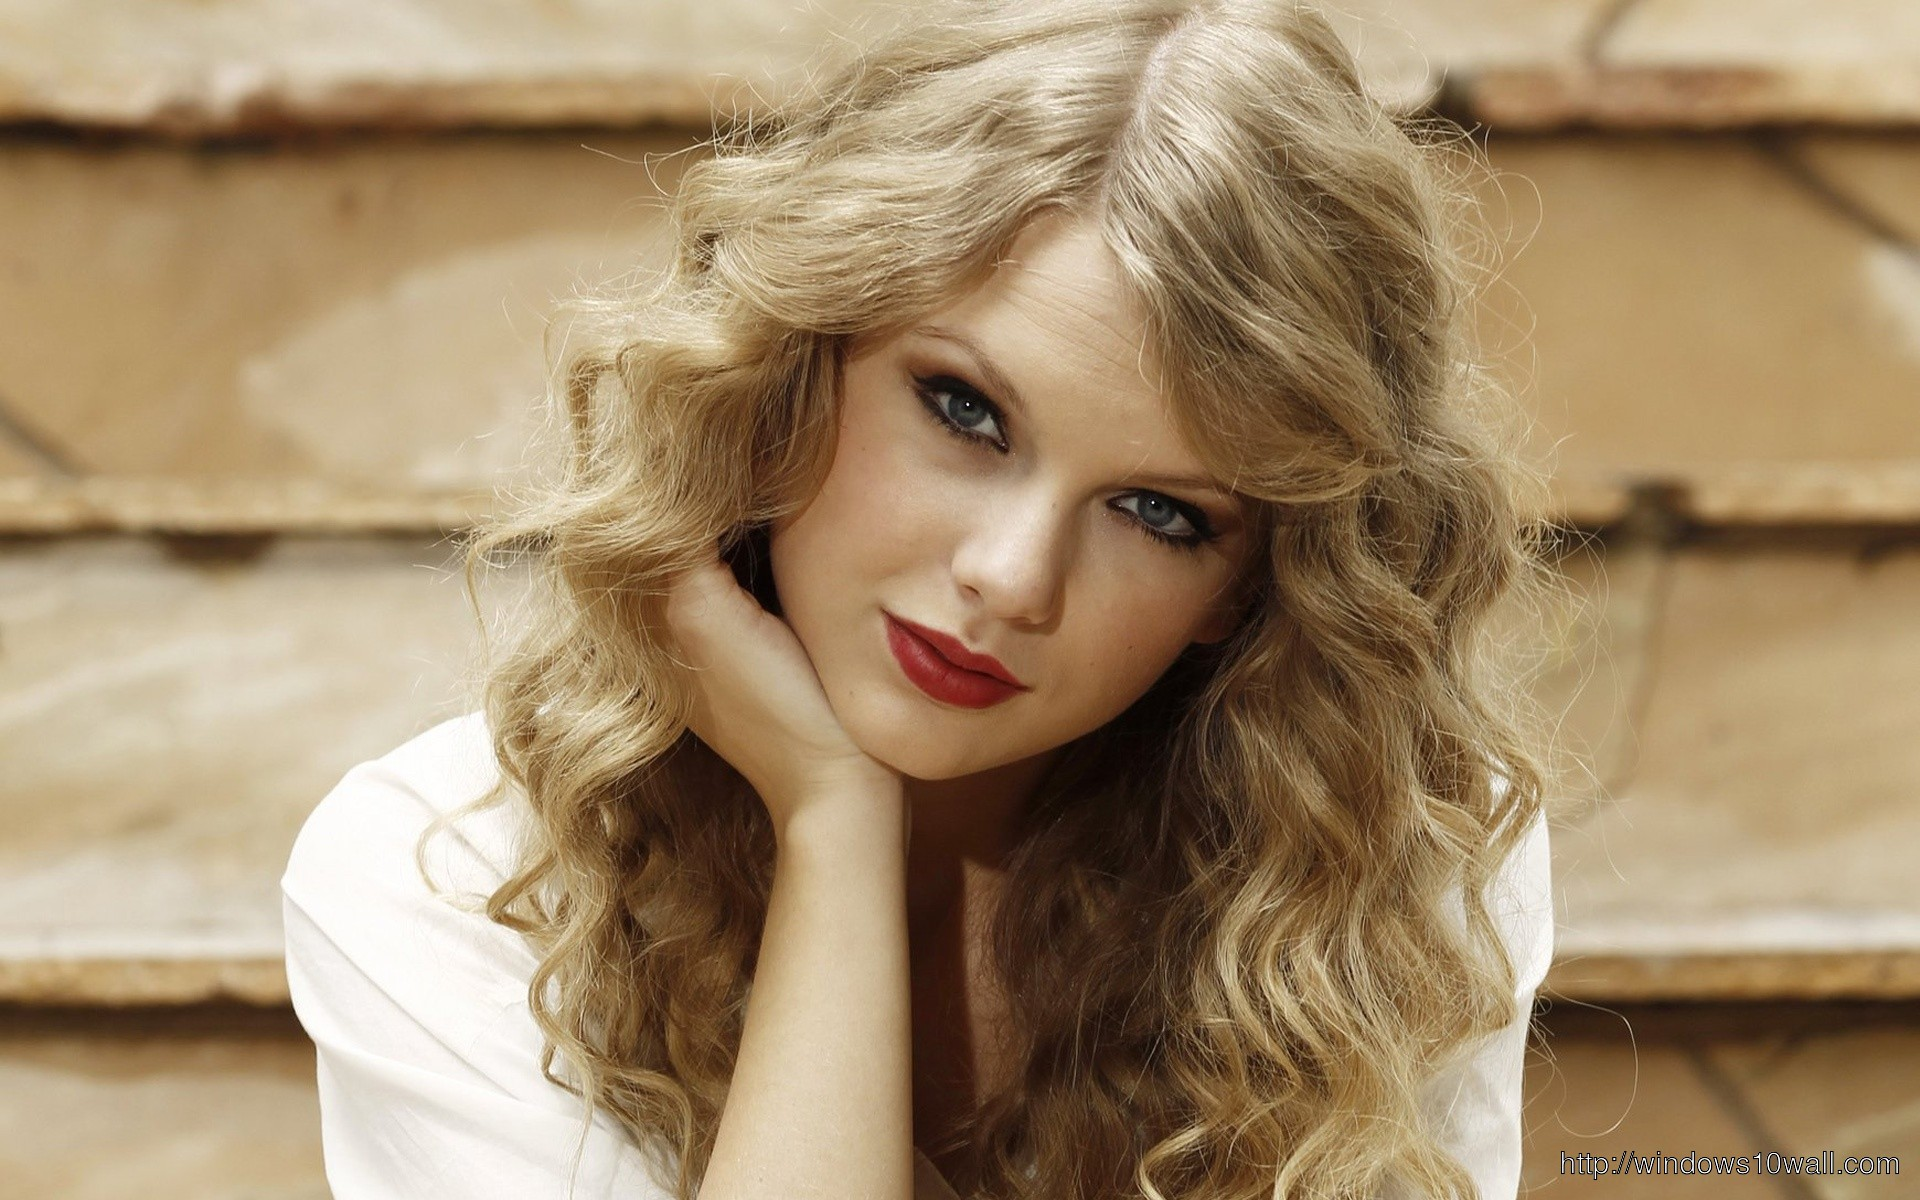 taylor-swift-best-wallpaper